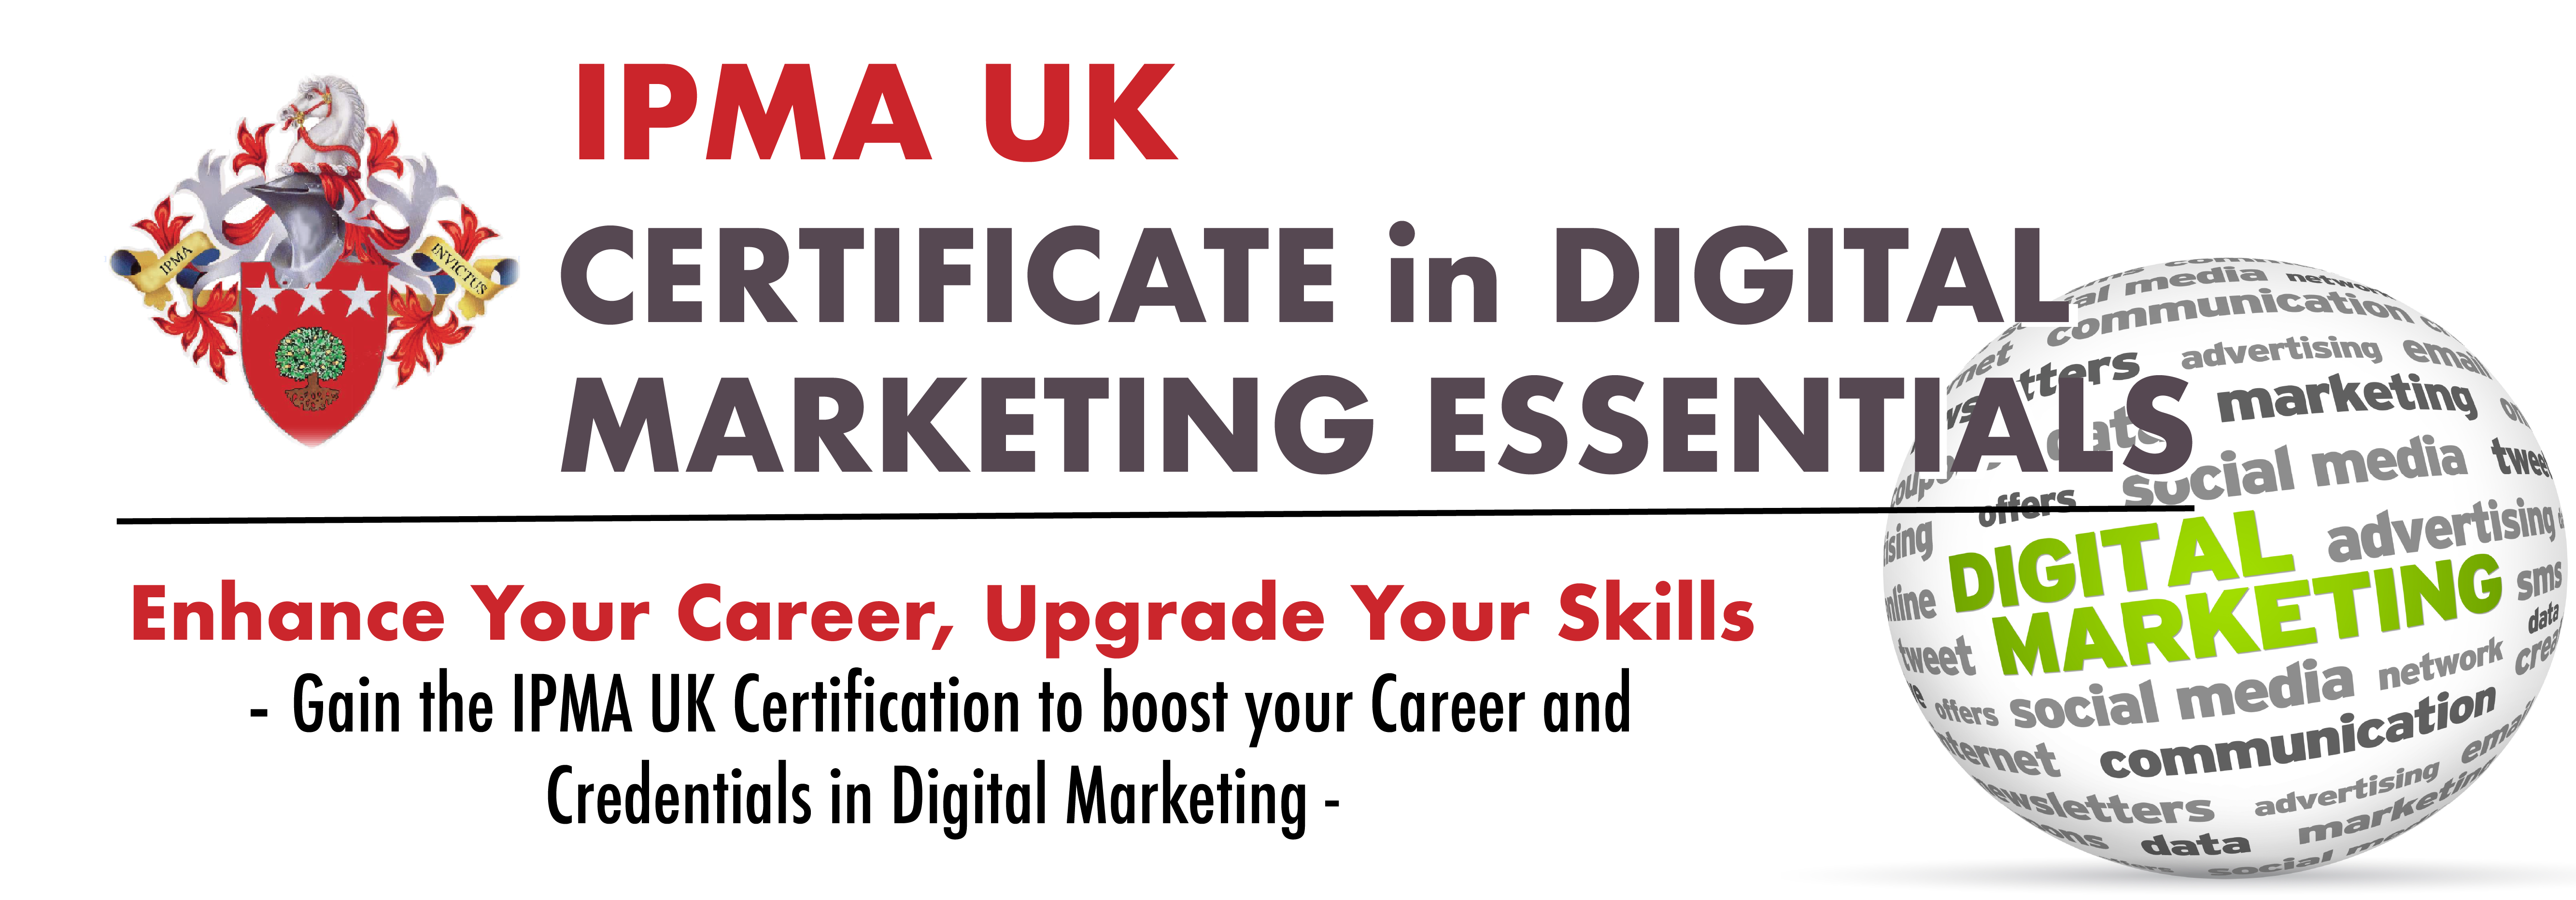 IPMA UK Certificate in Digital Marketing Essentials